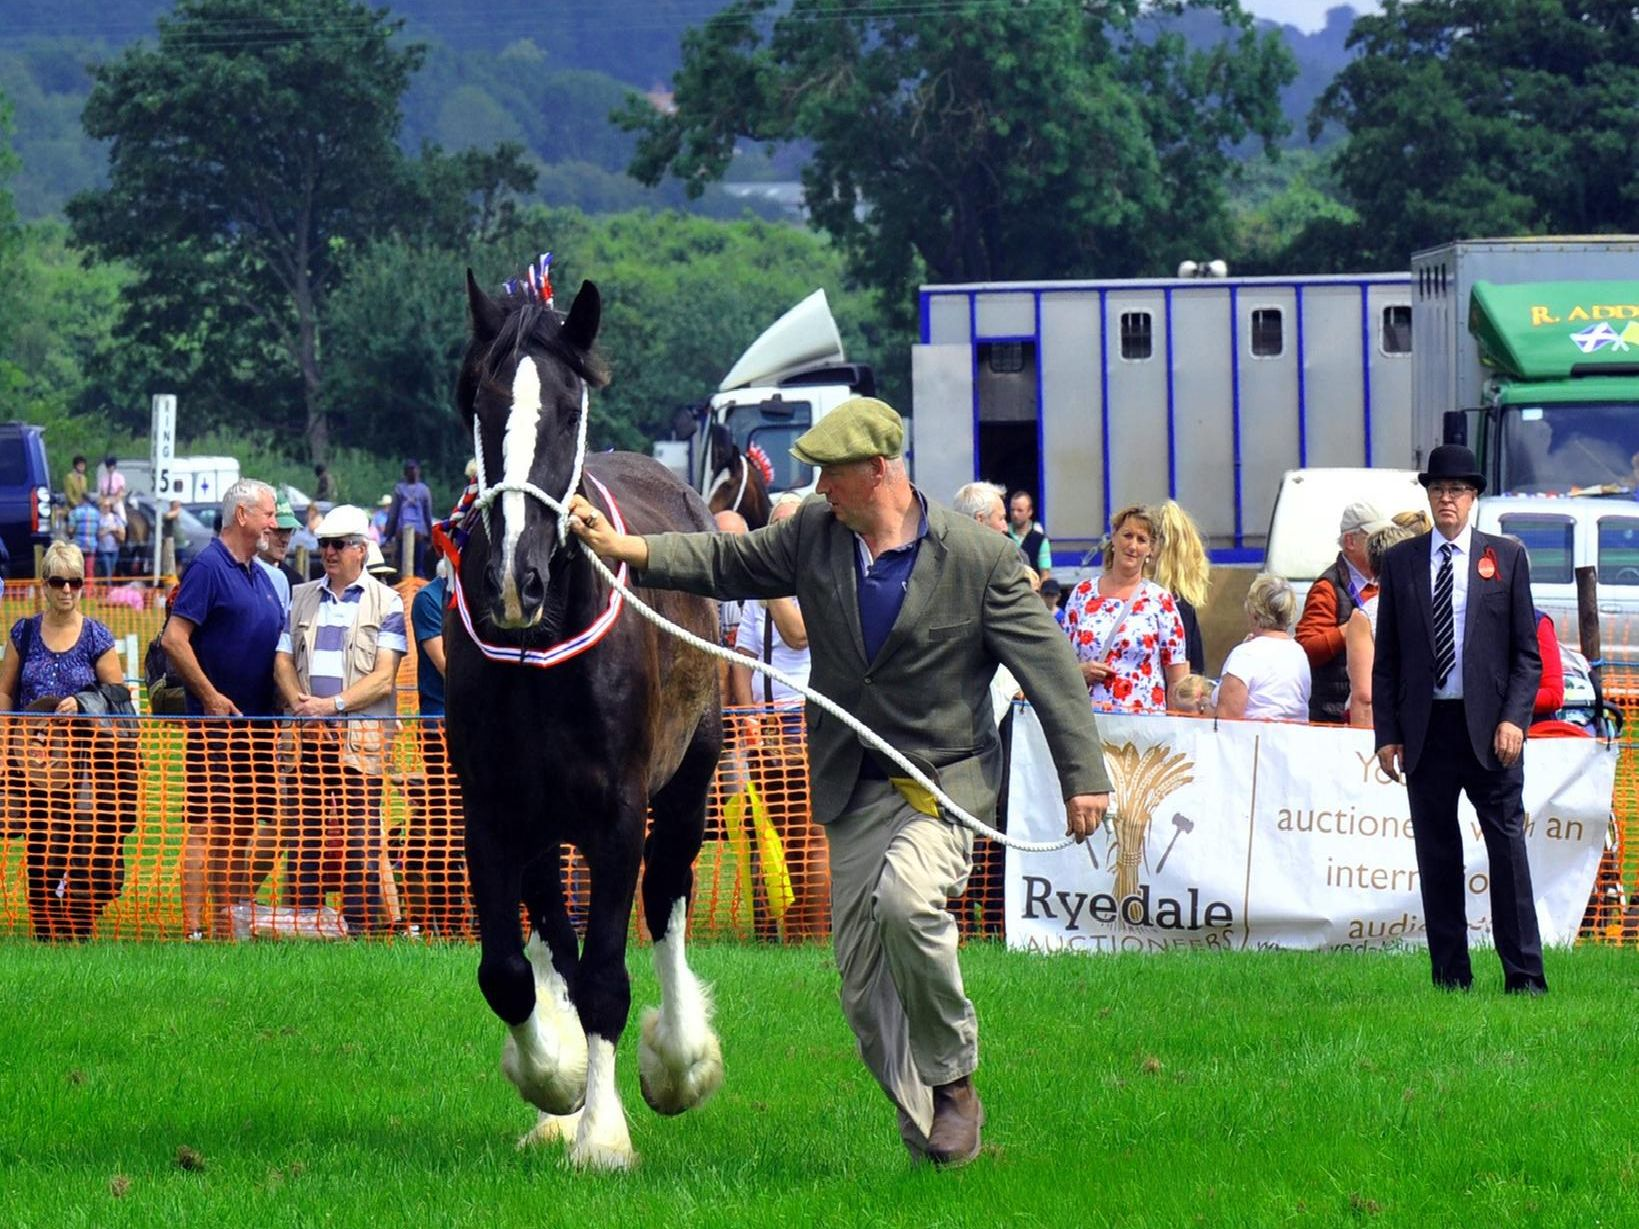 The heavy horses are put through their paces during judging at Ryedale Show